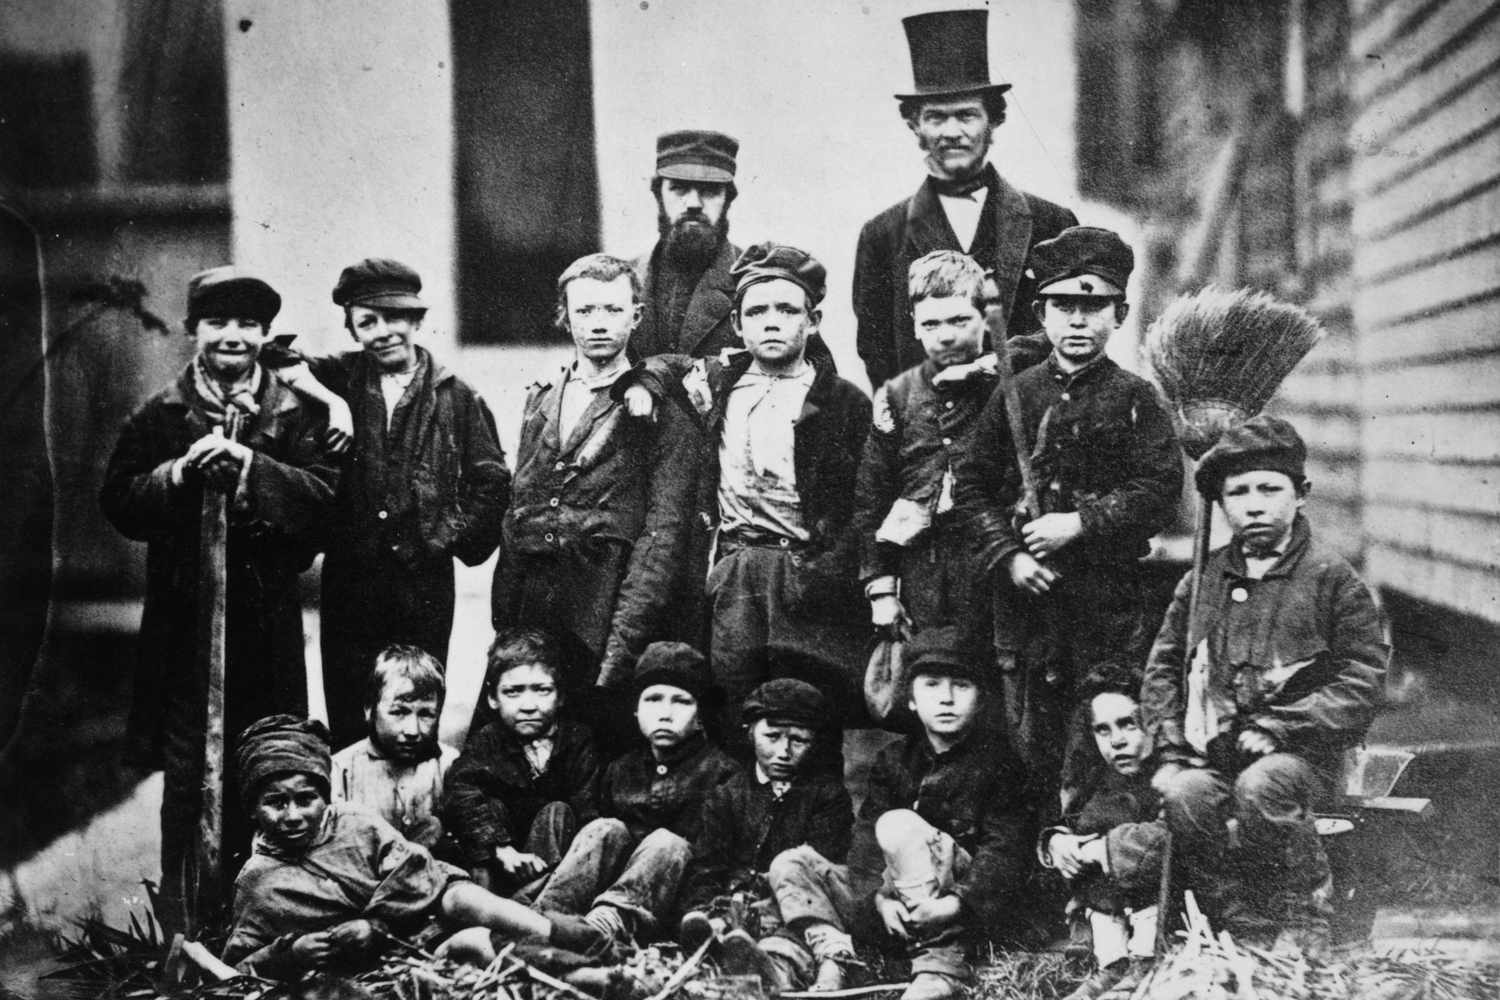 D.L. Moody with a group of orphans.